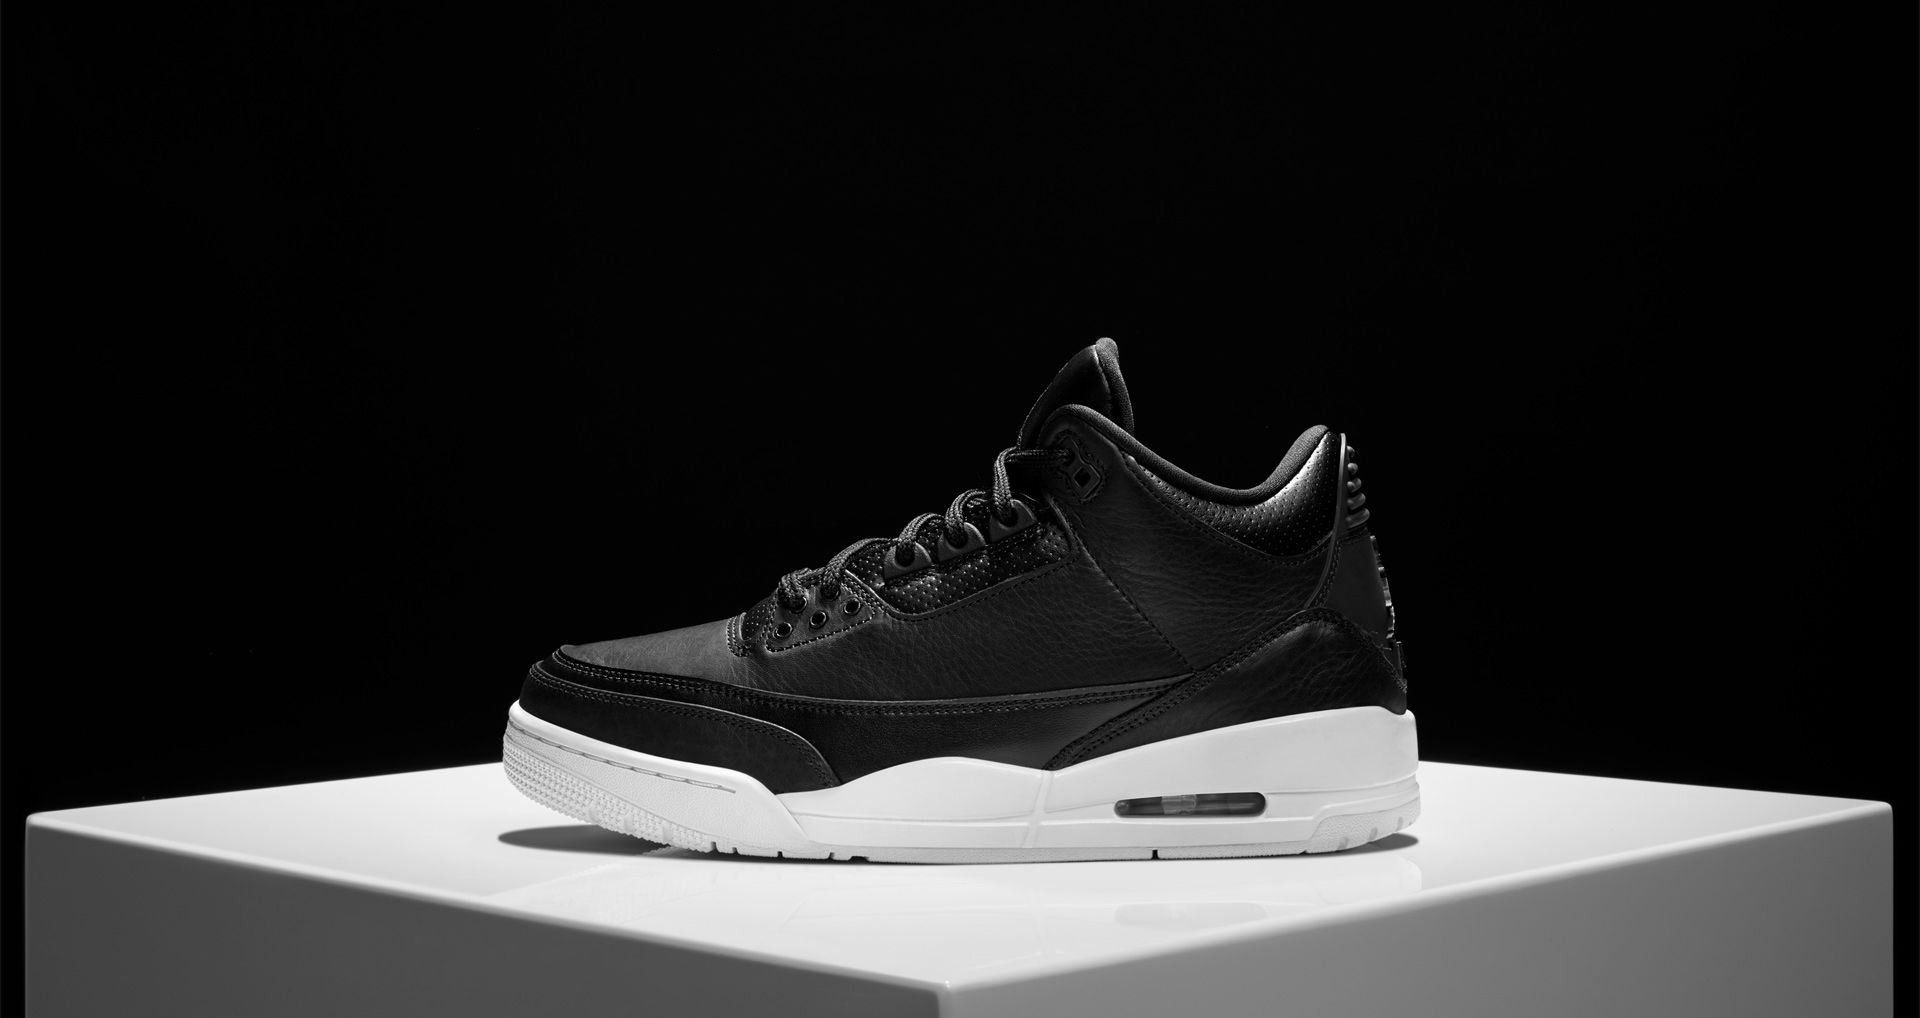 save off a71c1 b09f5 Air Jordan 3 Retro Black  White Release Date. Nike⁠+ SNKRS